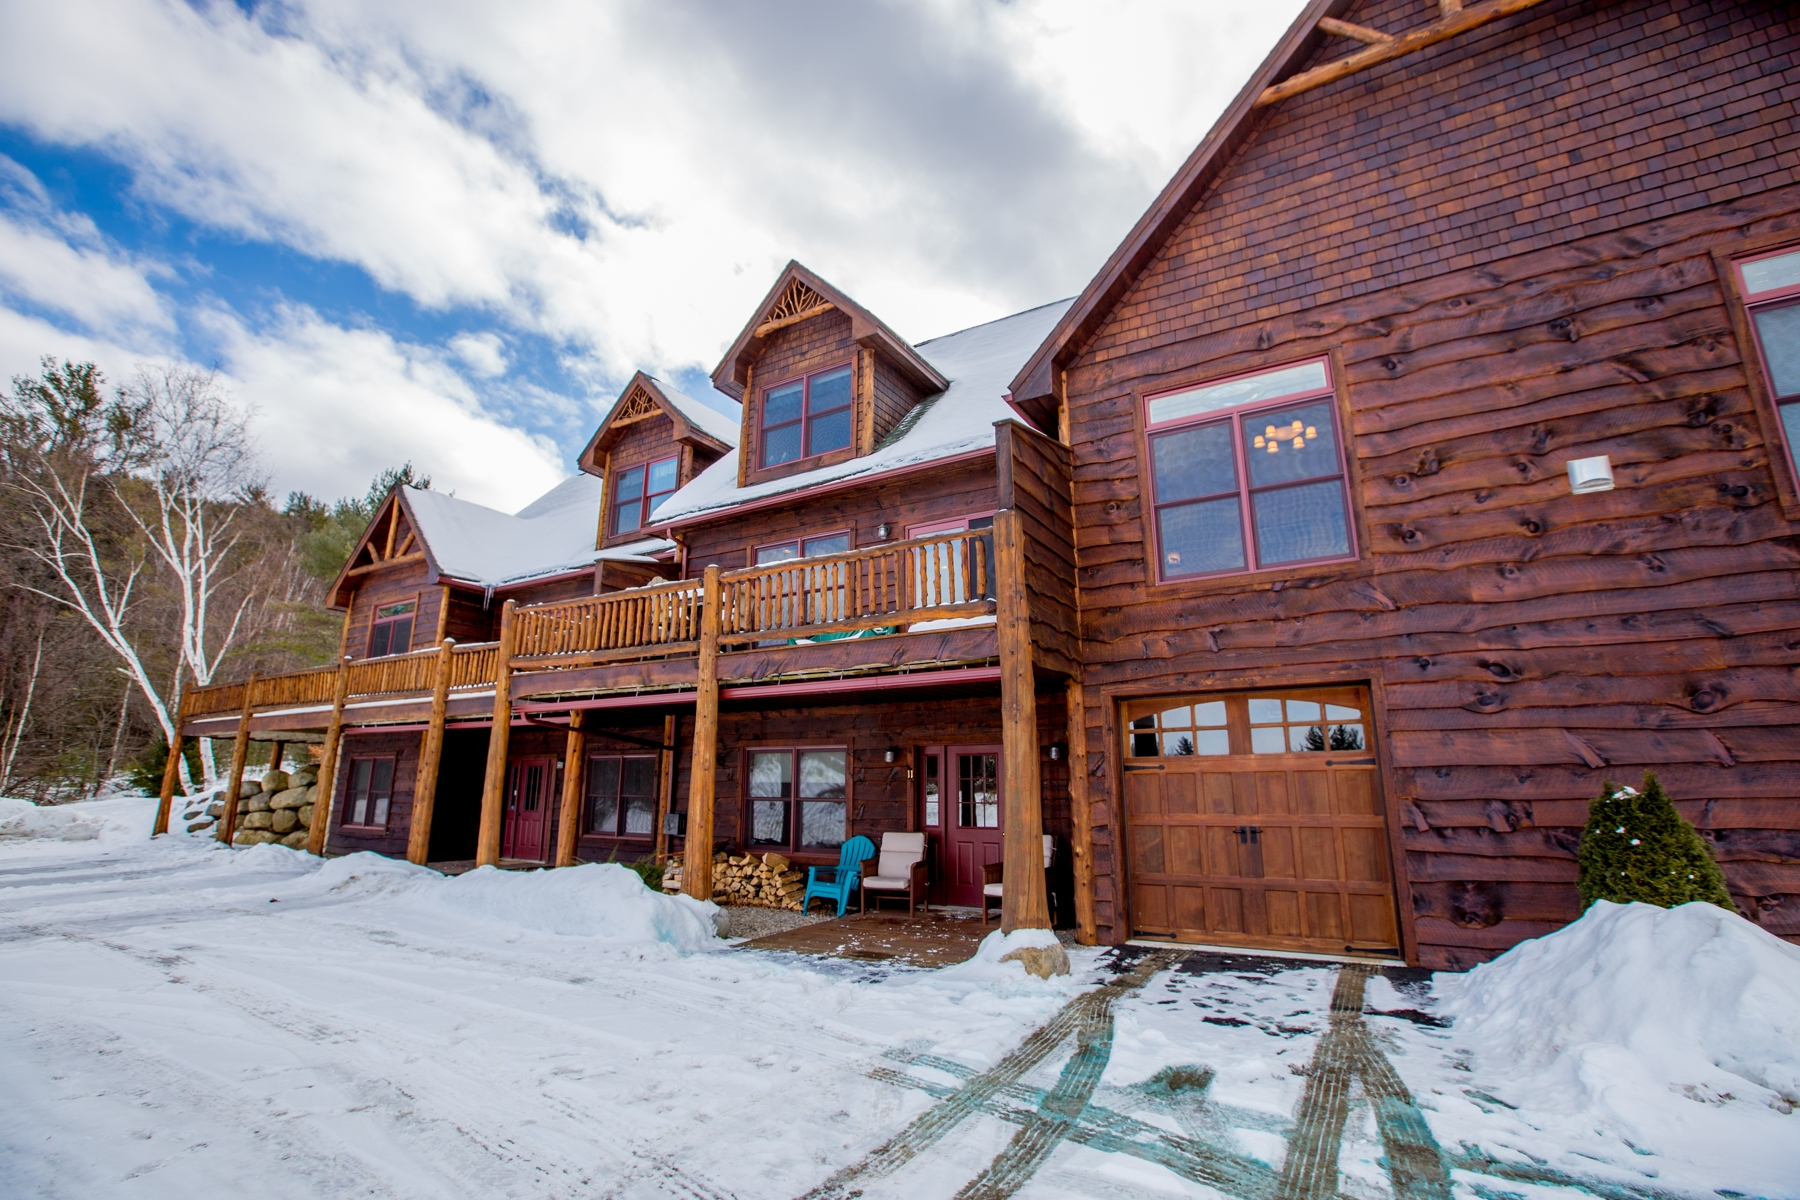 Townhouse for Sale at Luxury Top Ridge Home With Mountain Views 11 Adirondack Expressway North Creek, New York 12853 United States